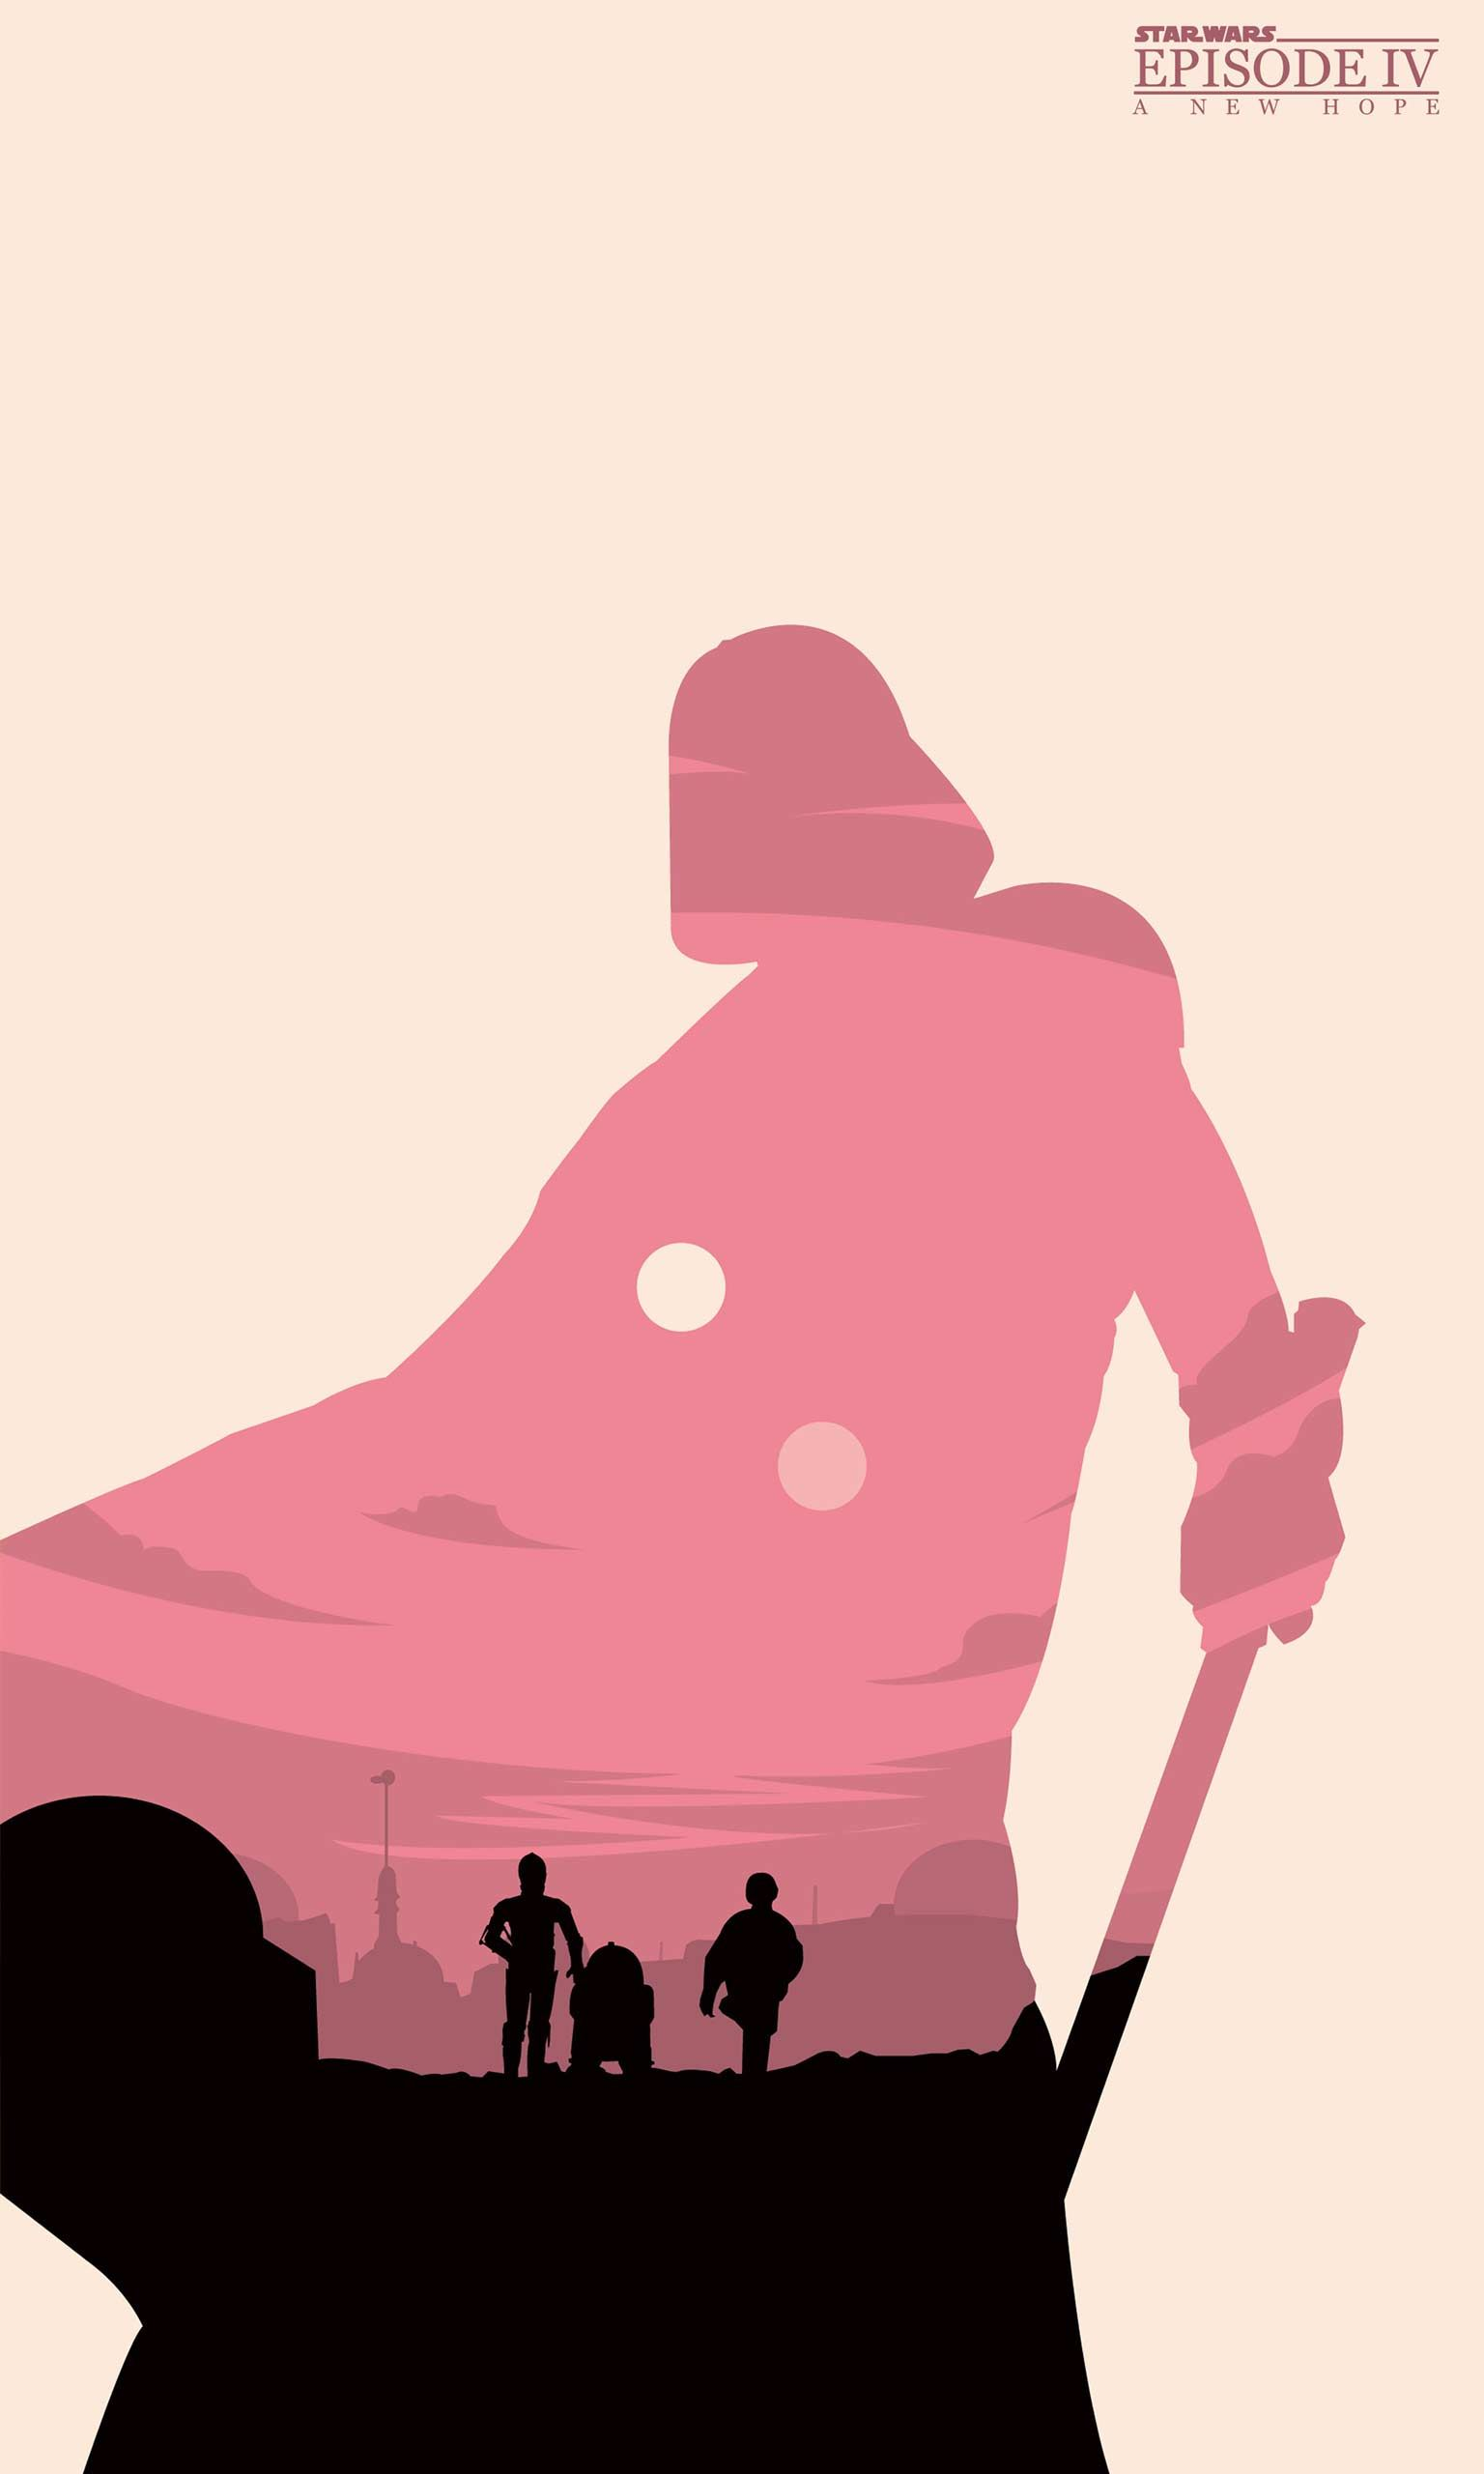 Star Wars A New Hope Mobile Wallpaper Minimalist 1536x2560 Jpg 1536 2560 Star Wars Art Star Wars Poster Star Wars Wallpaper Iphone